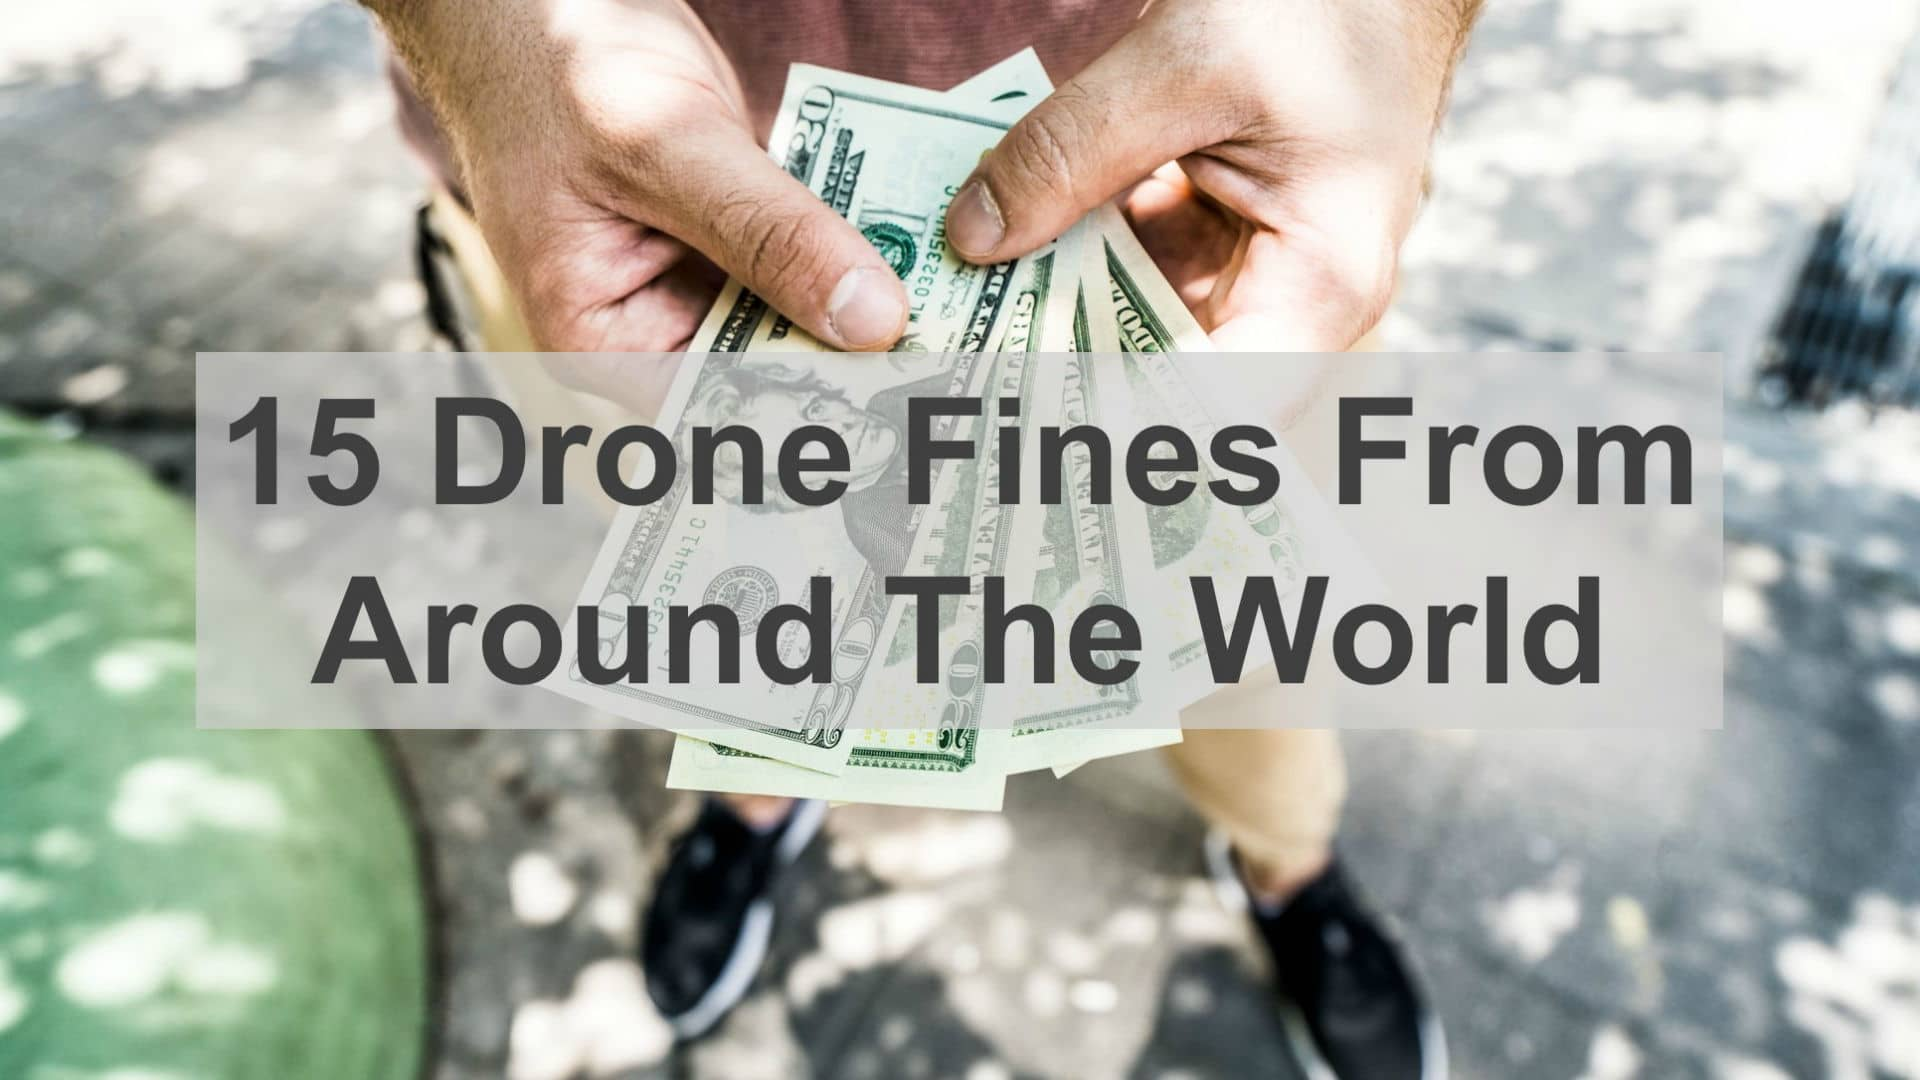 15 drone fines from all around the world